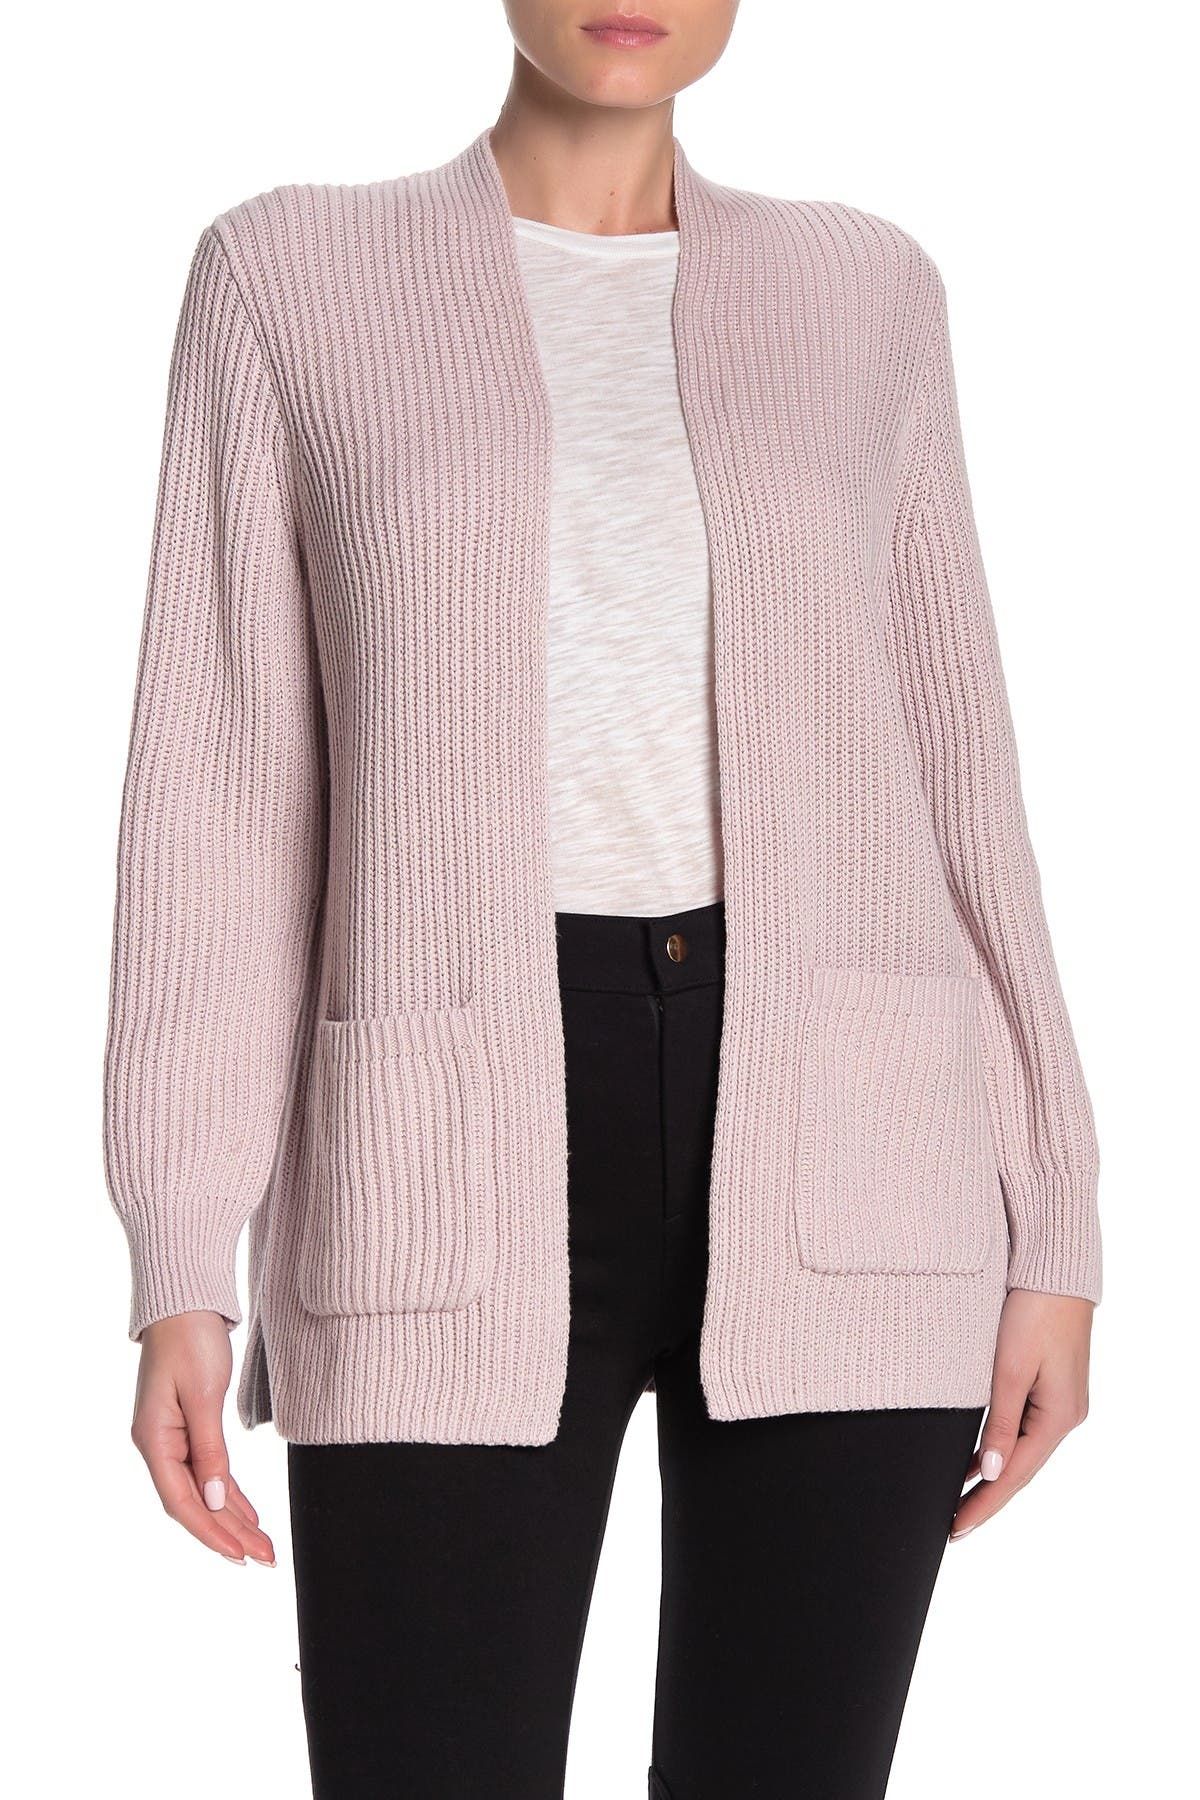 Image of Madewell Nolan Ribbed Open Front Cardigan